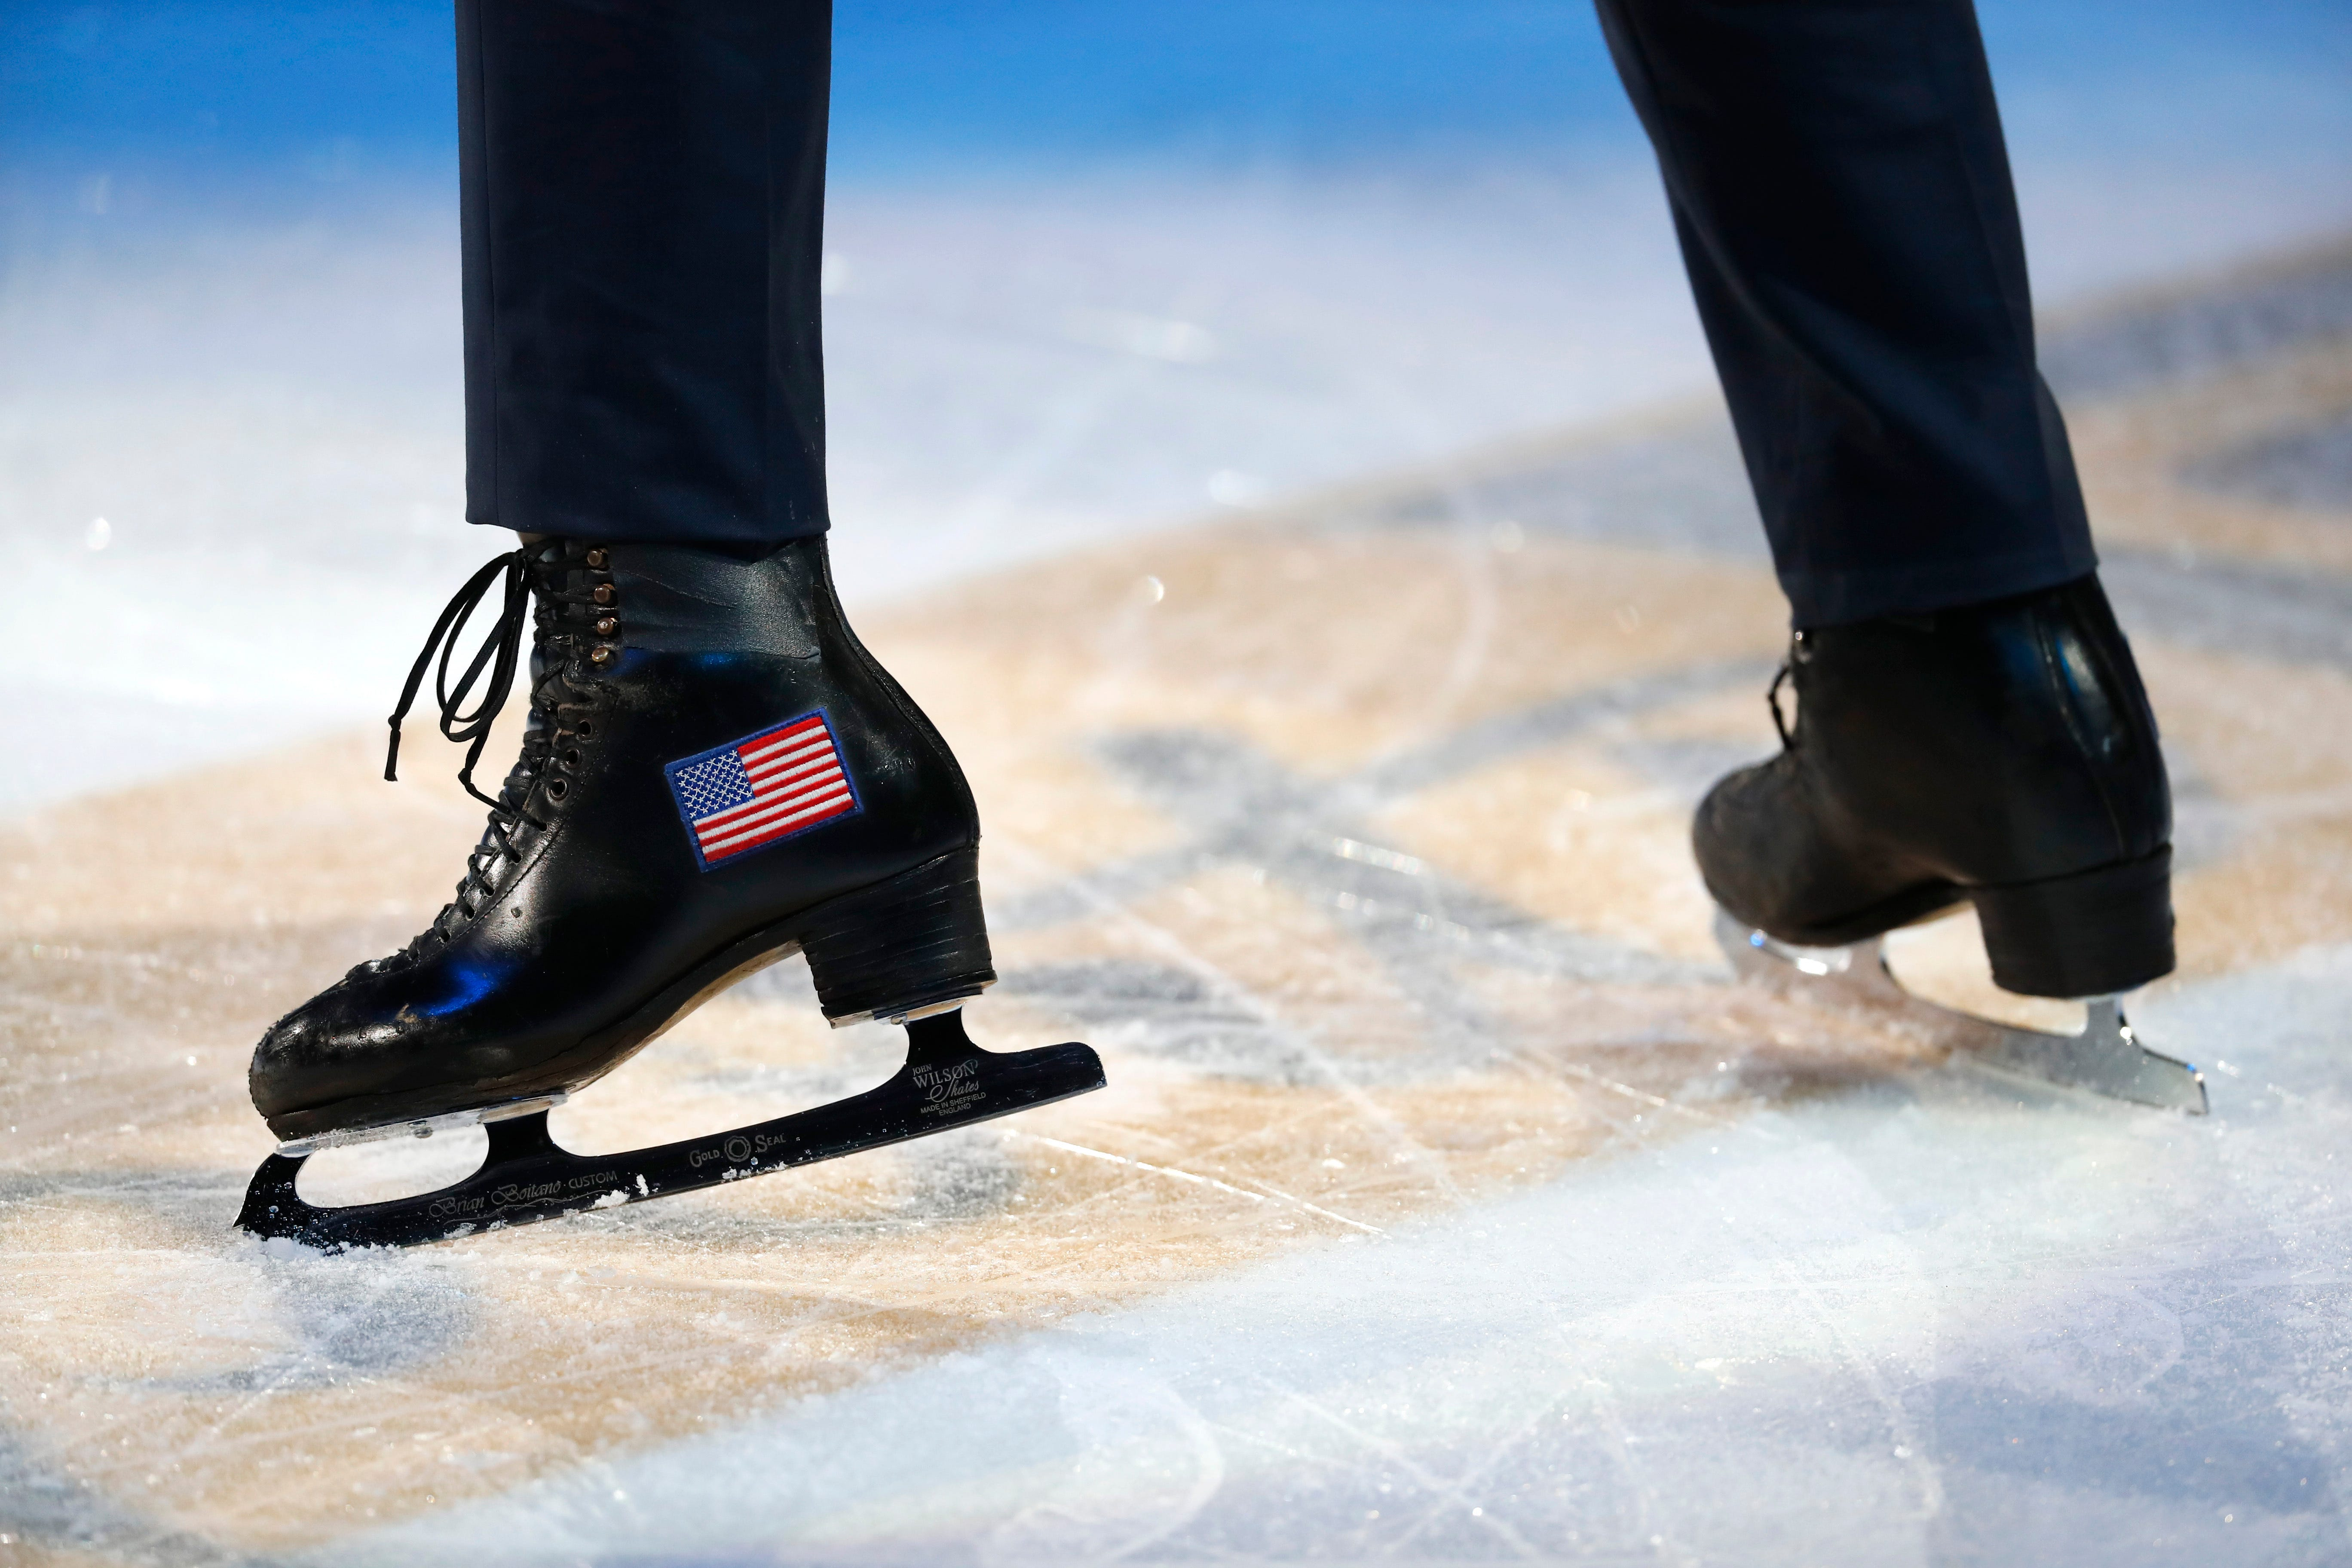 U.S. Figure Skating rocked: Suit against Richard Callaghan alleges sexual abuse, and accusation emerges of attempt to silence skater